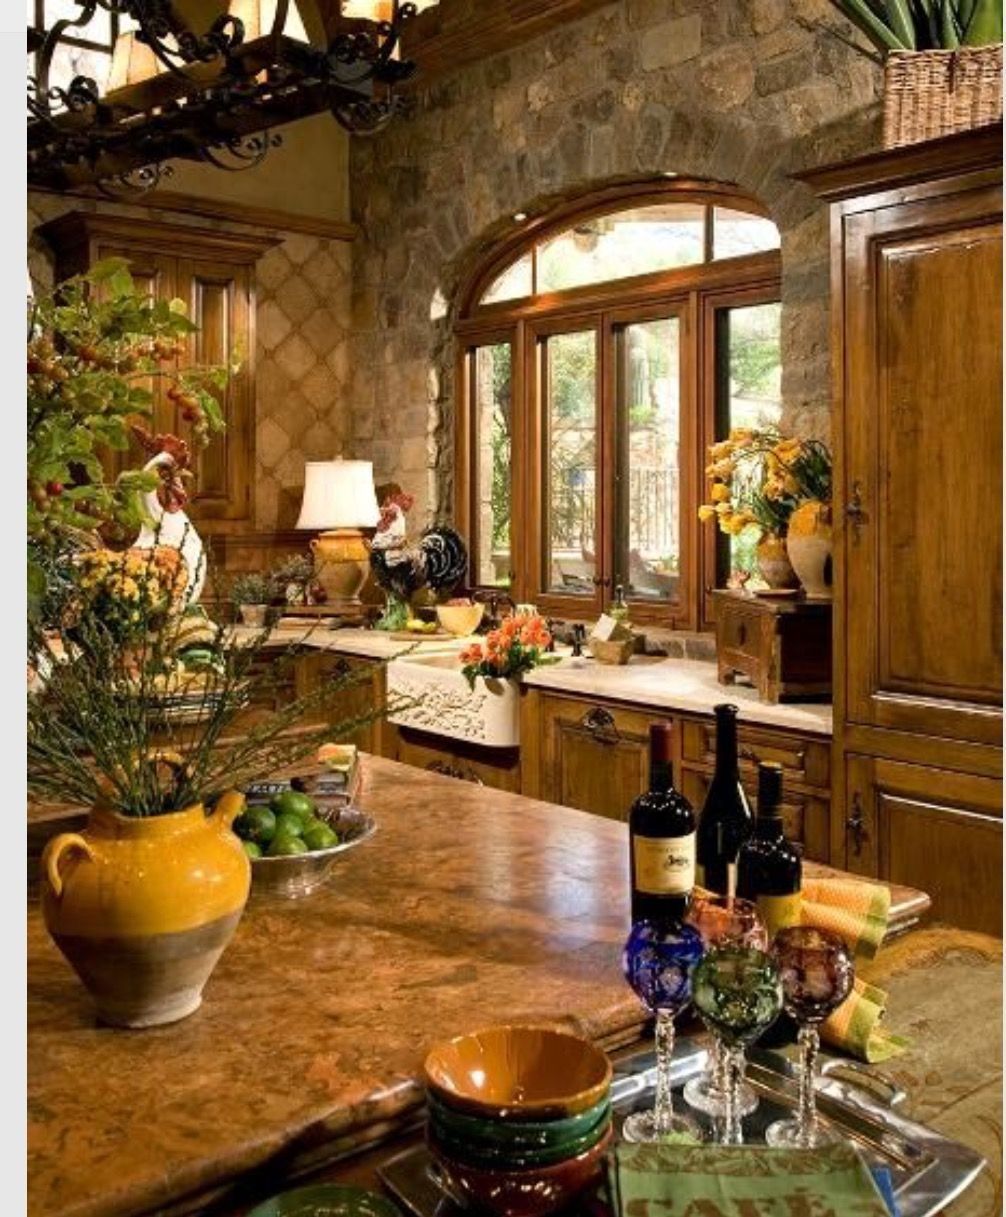 best images about kitchens on pinterest french kitchens